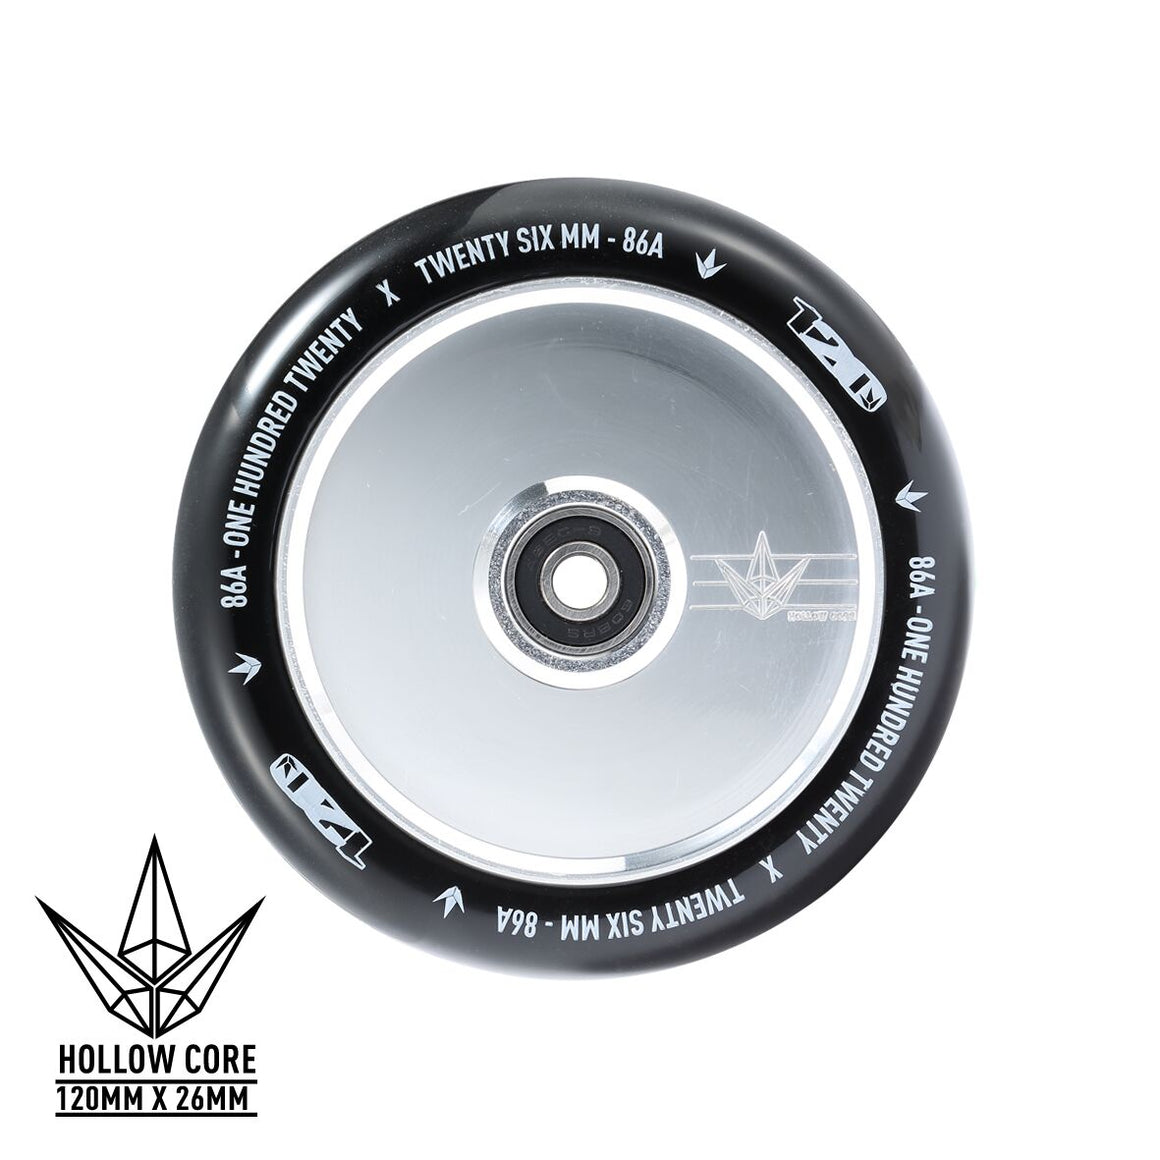 Envy Hollow Core Hologram Classic 120mm Scooter Wheels